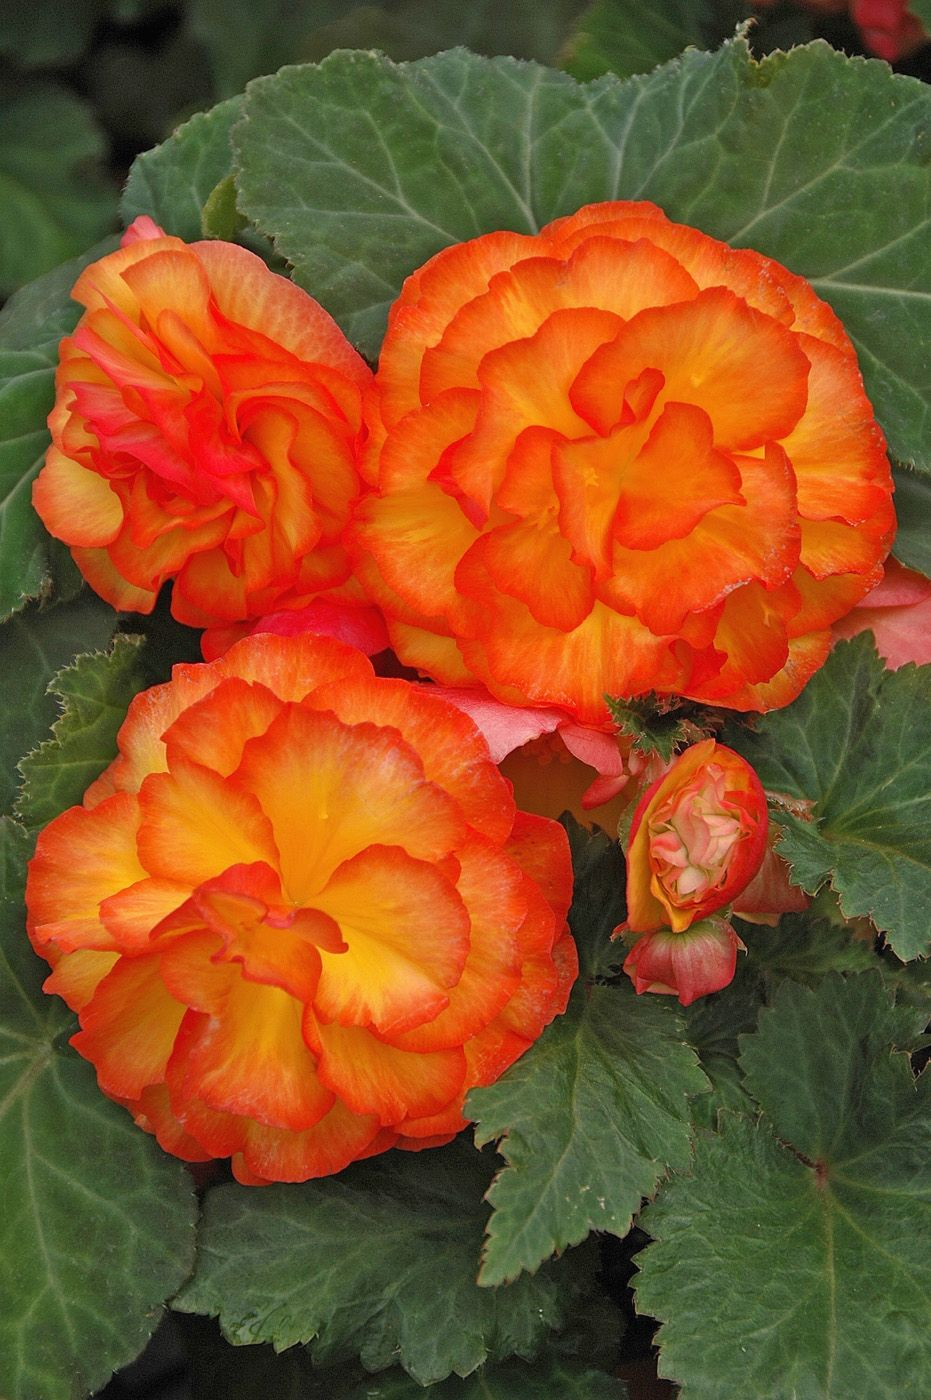 Begonias Pictures With Names Publications May Download